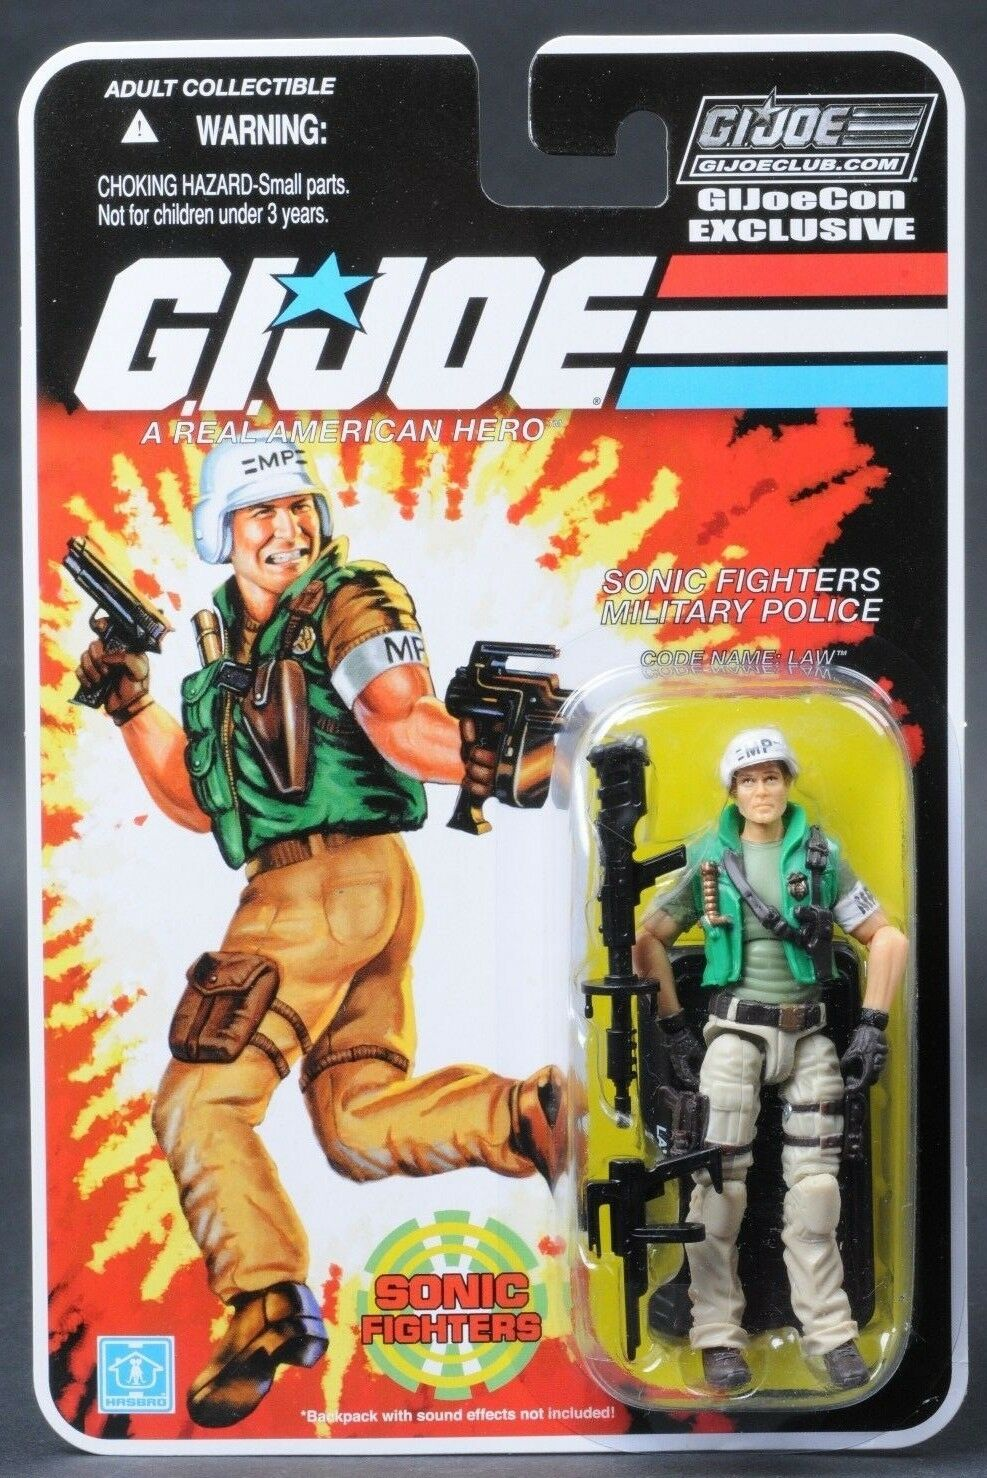 2018 2018 GI Joe Con JoeCon Sonic Fighters Law Carded MOC Exclusive